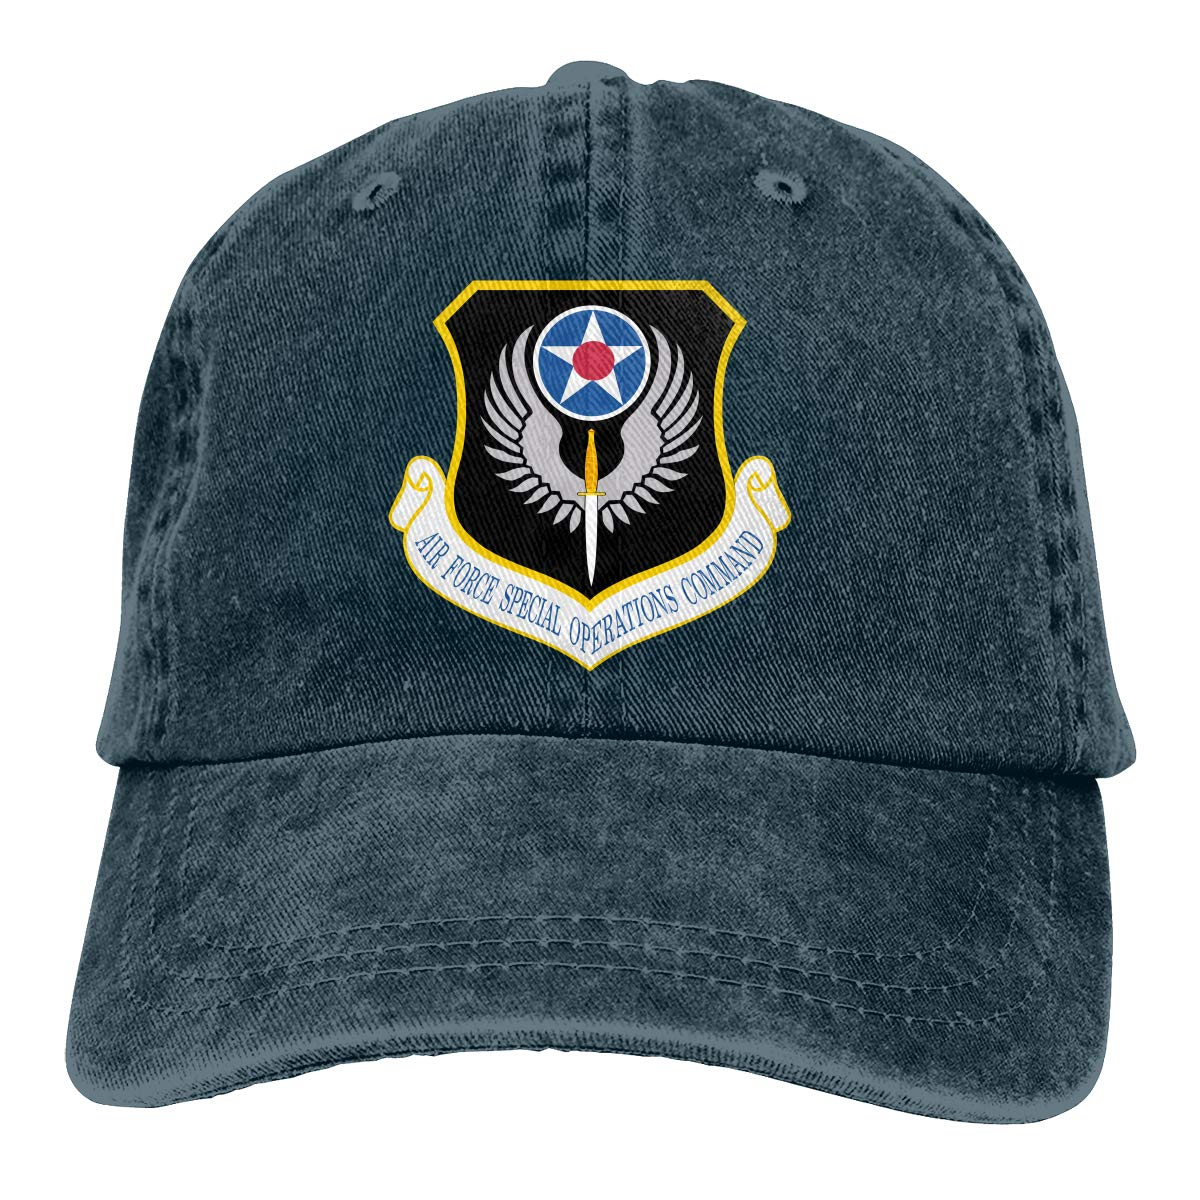 Air Force Special Operations Command Fashion Adjustable Cowboy Cap Baseball Cap for Women and Men